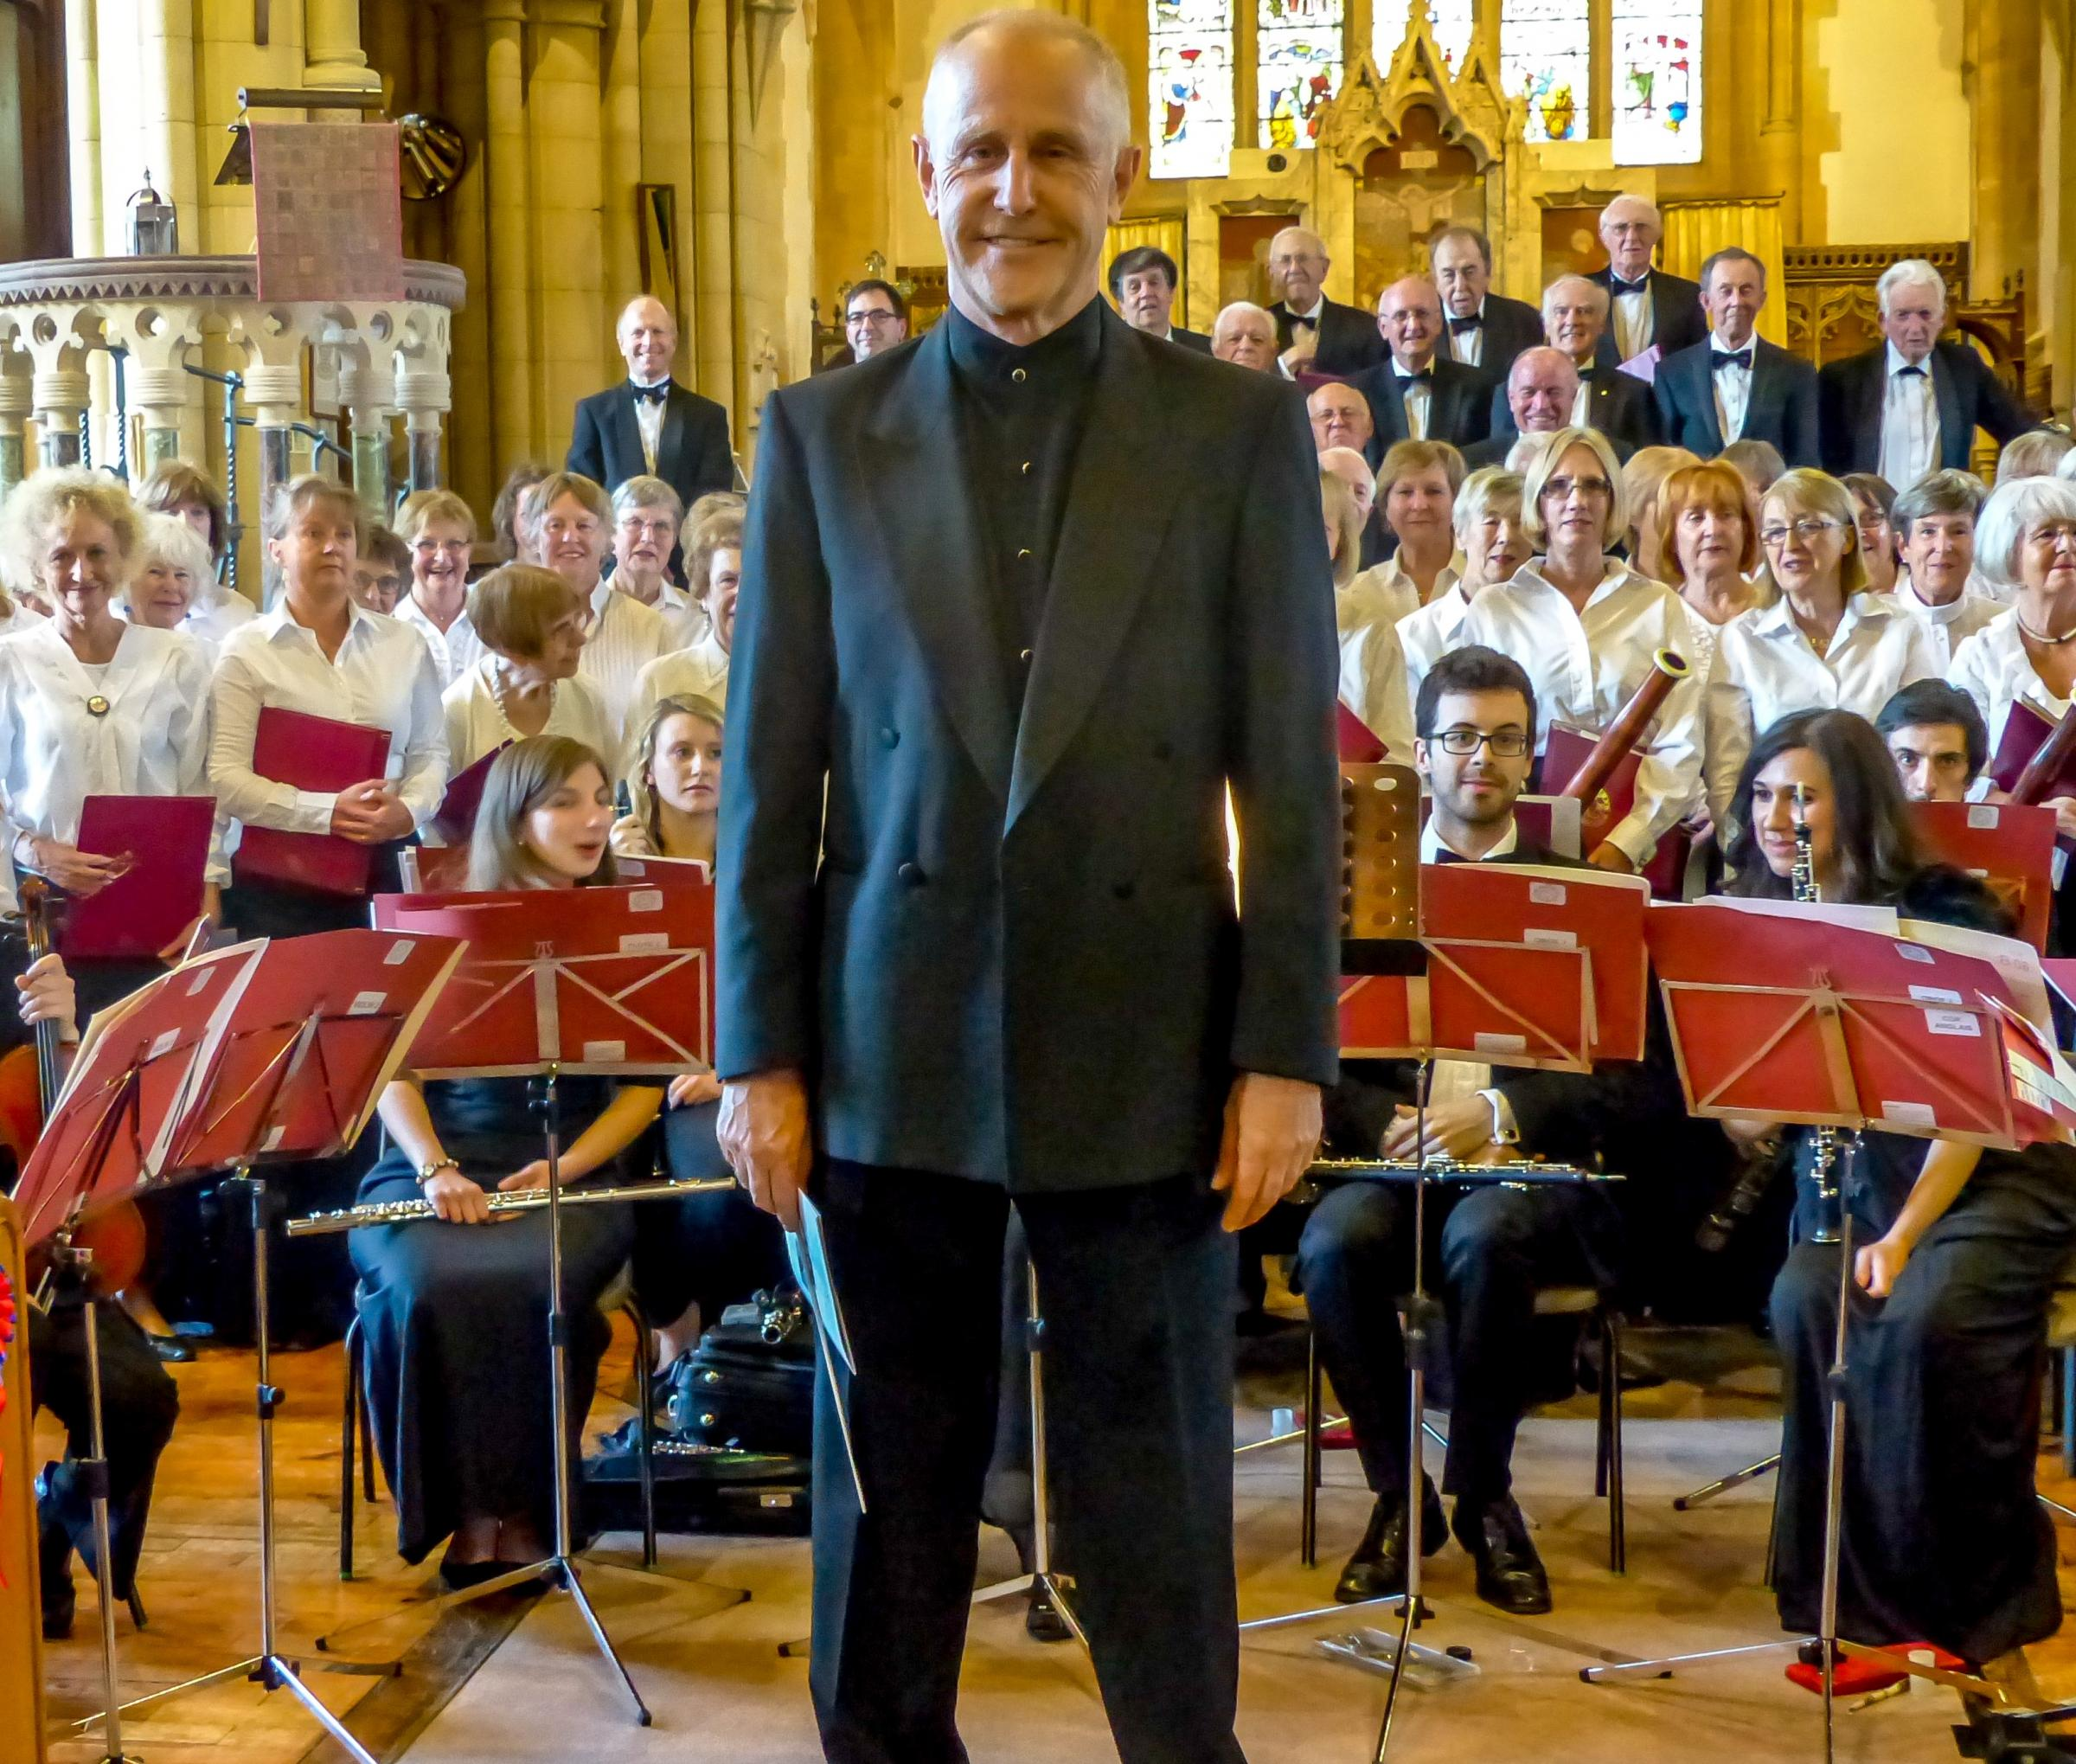 Marlow Choral Society: Mozart's Mass in C minor